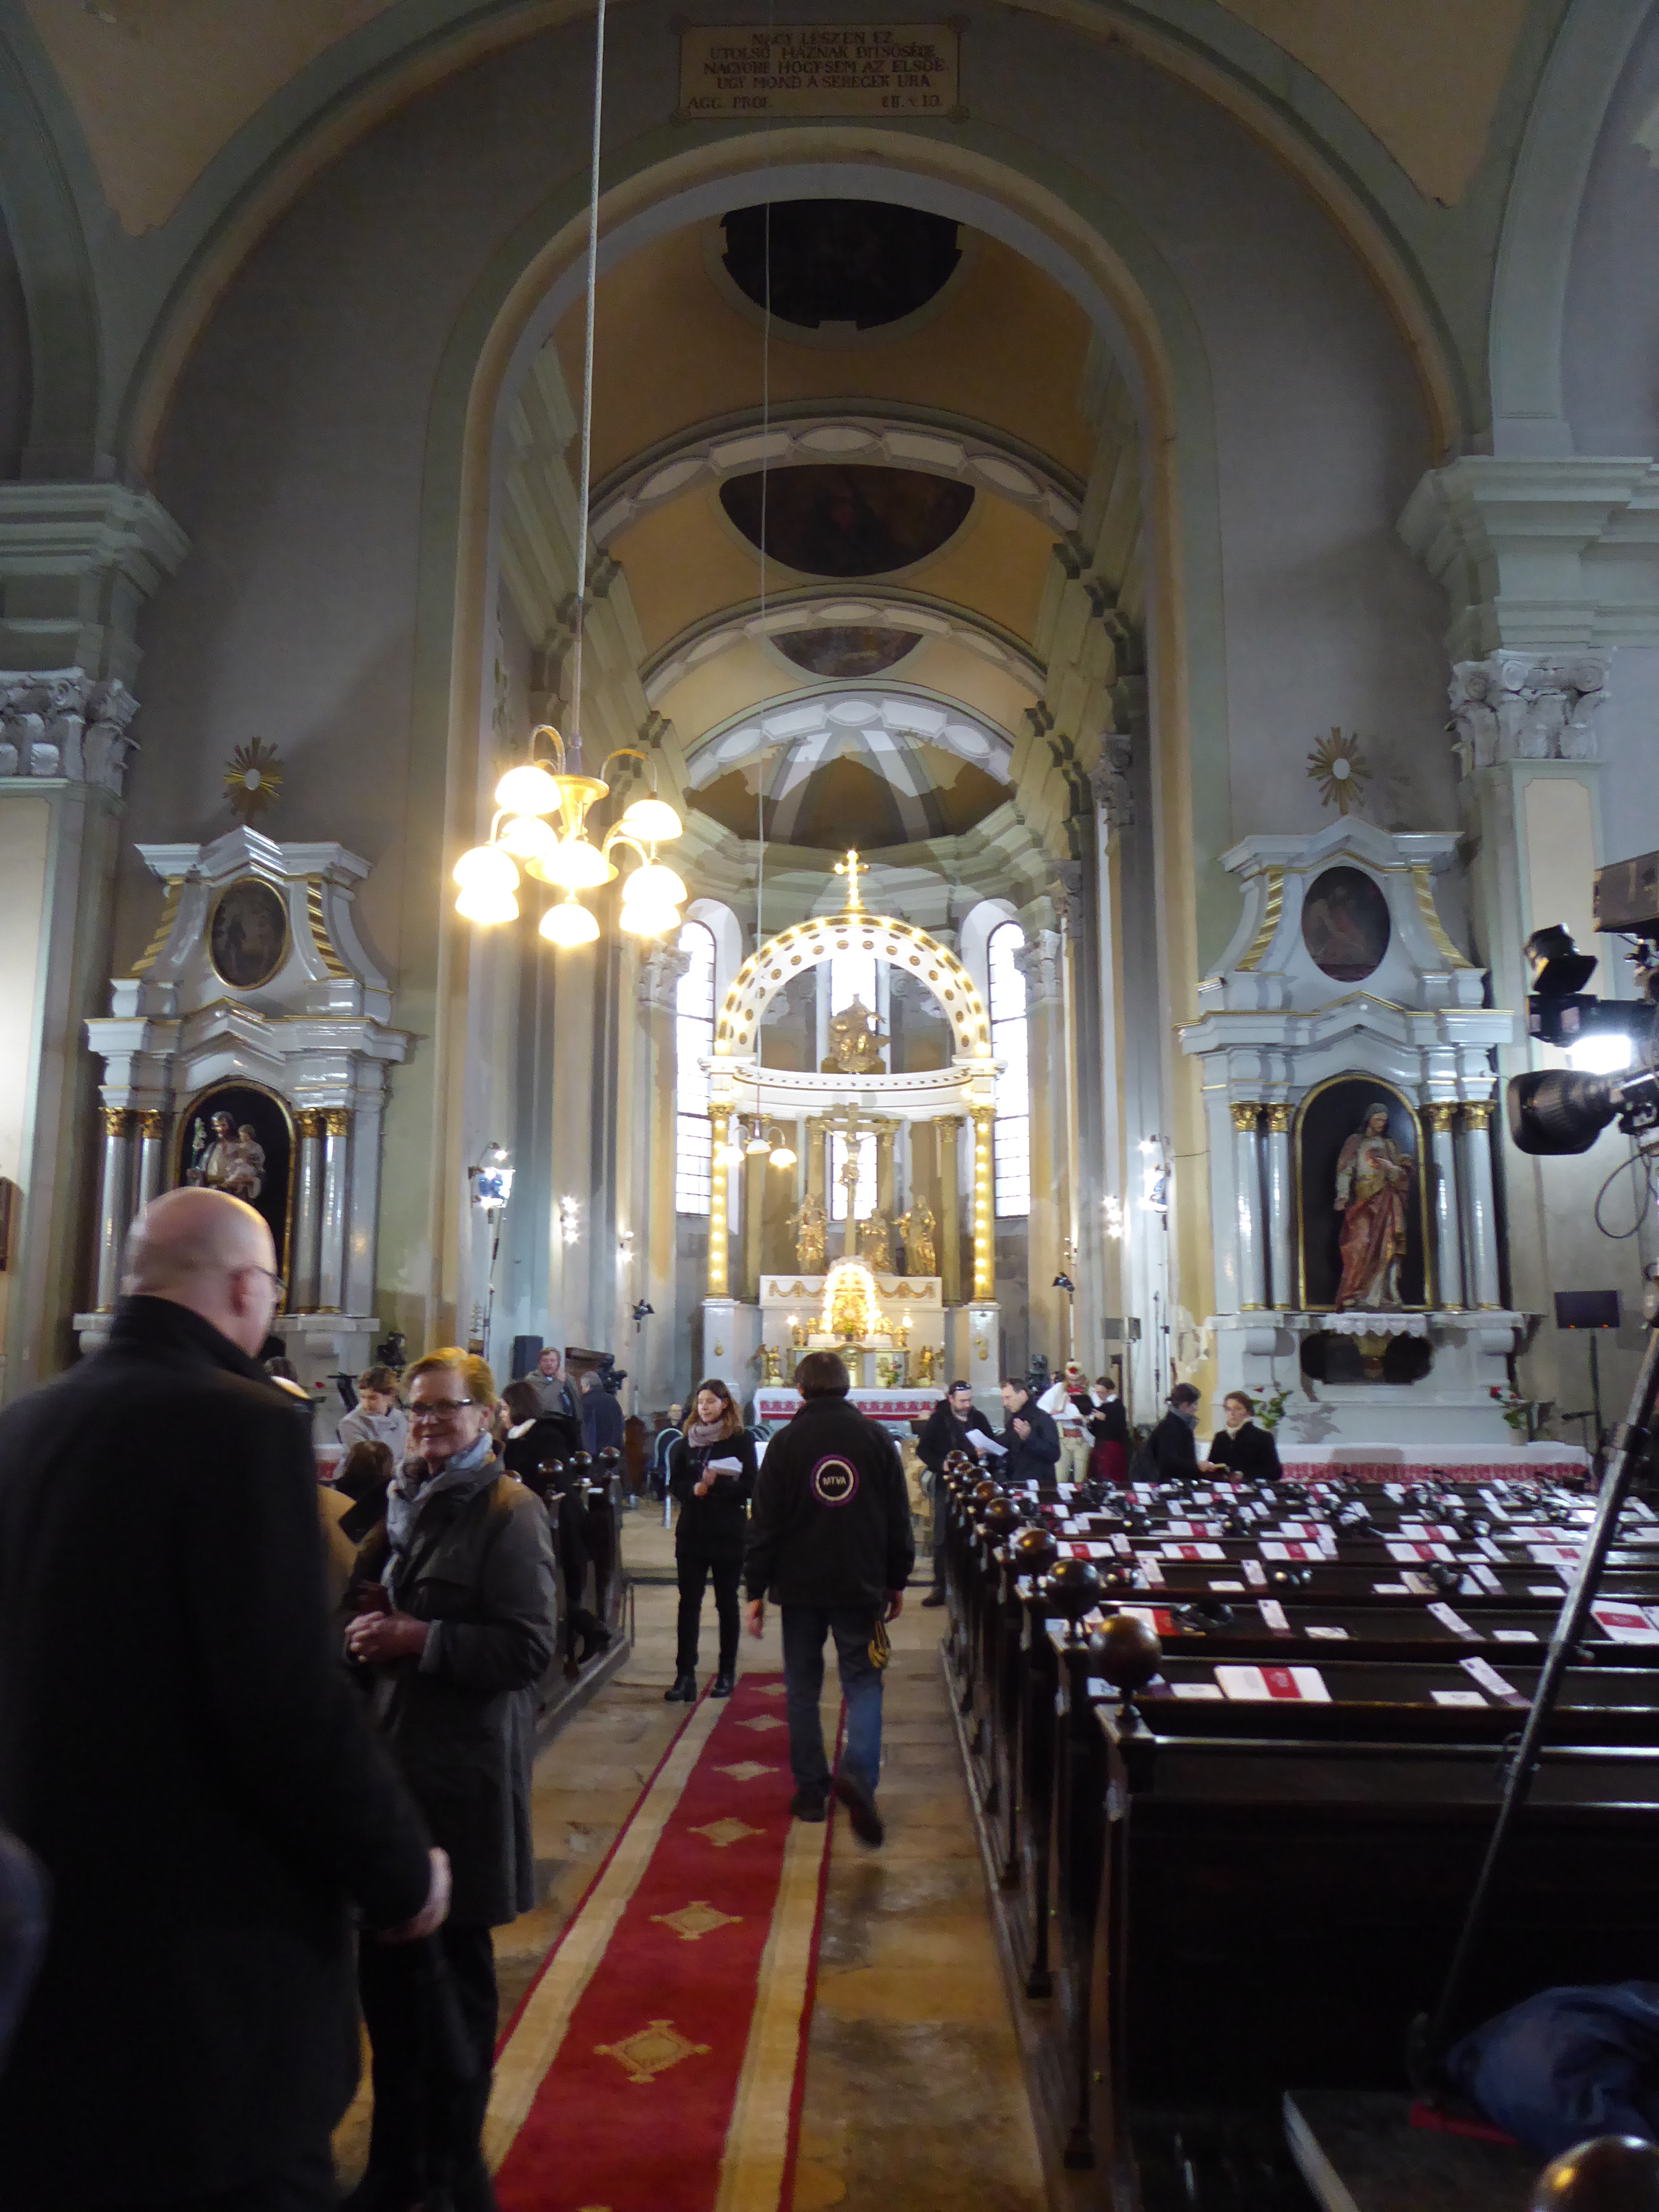 Inside the Church before the service